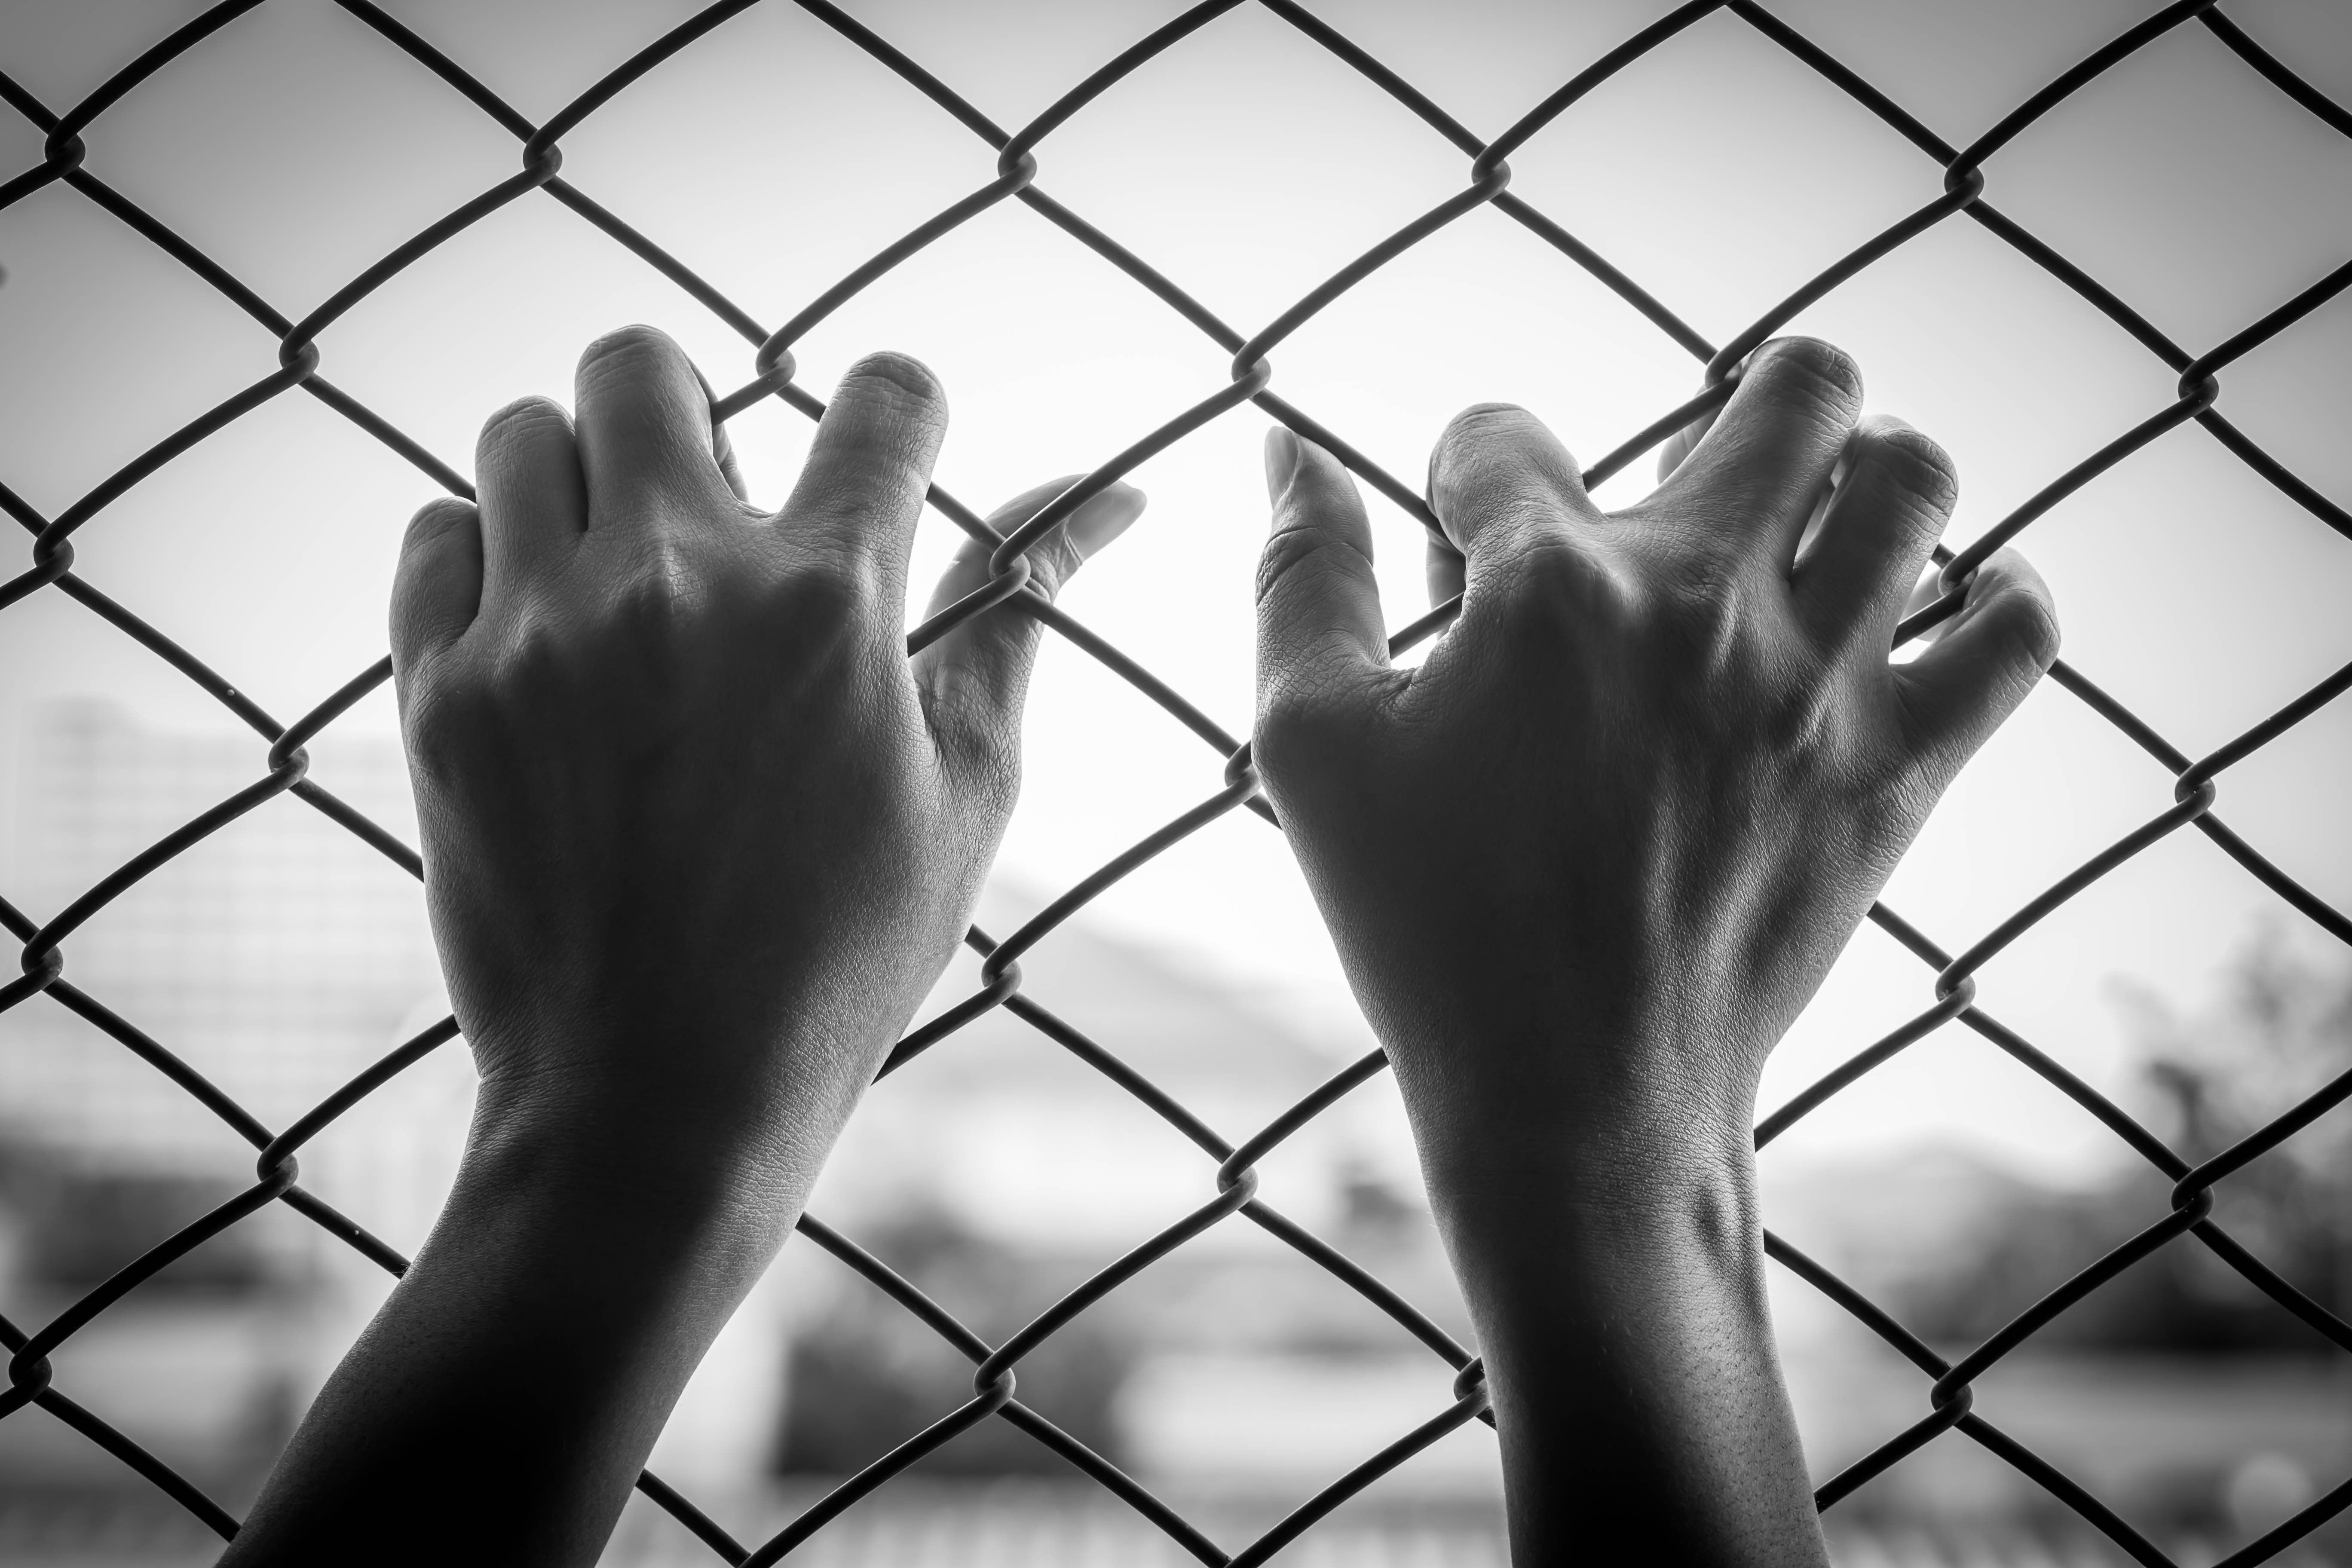 Black and white girl in jail hands close-up, lack of freedom,despair concept.Girl in jail hands close-up, lack of freedom,despair concept.